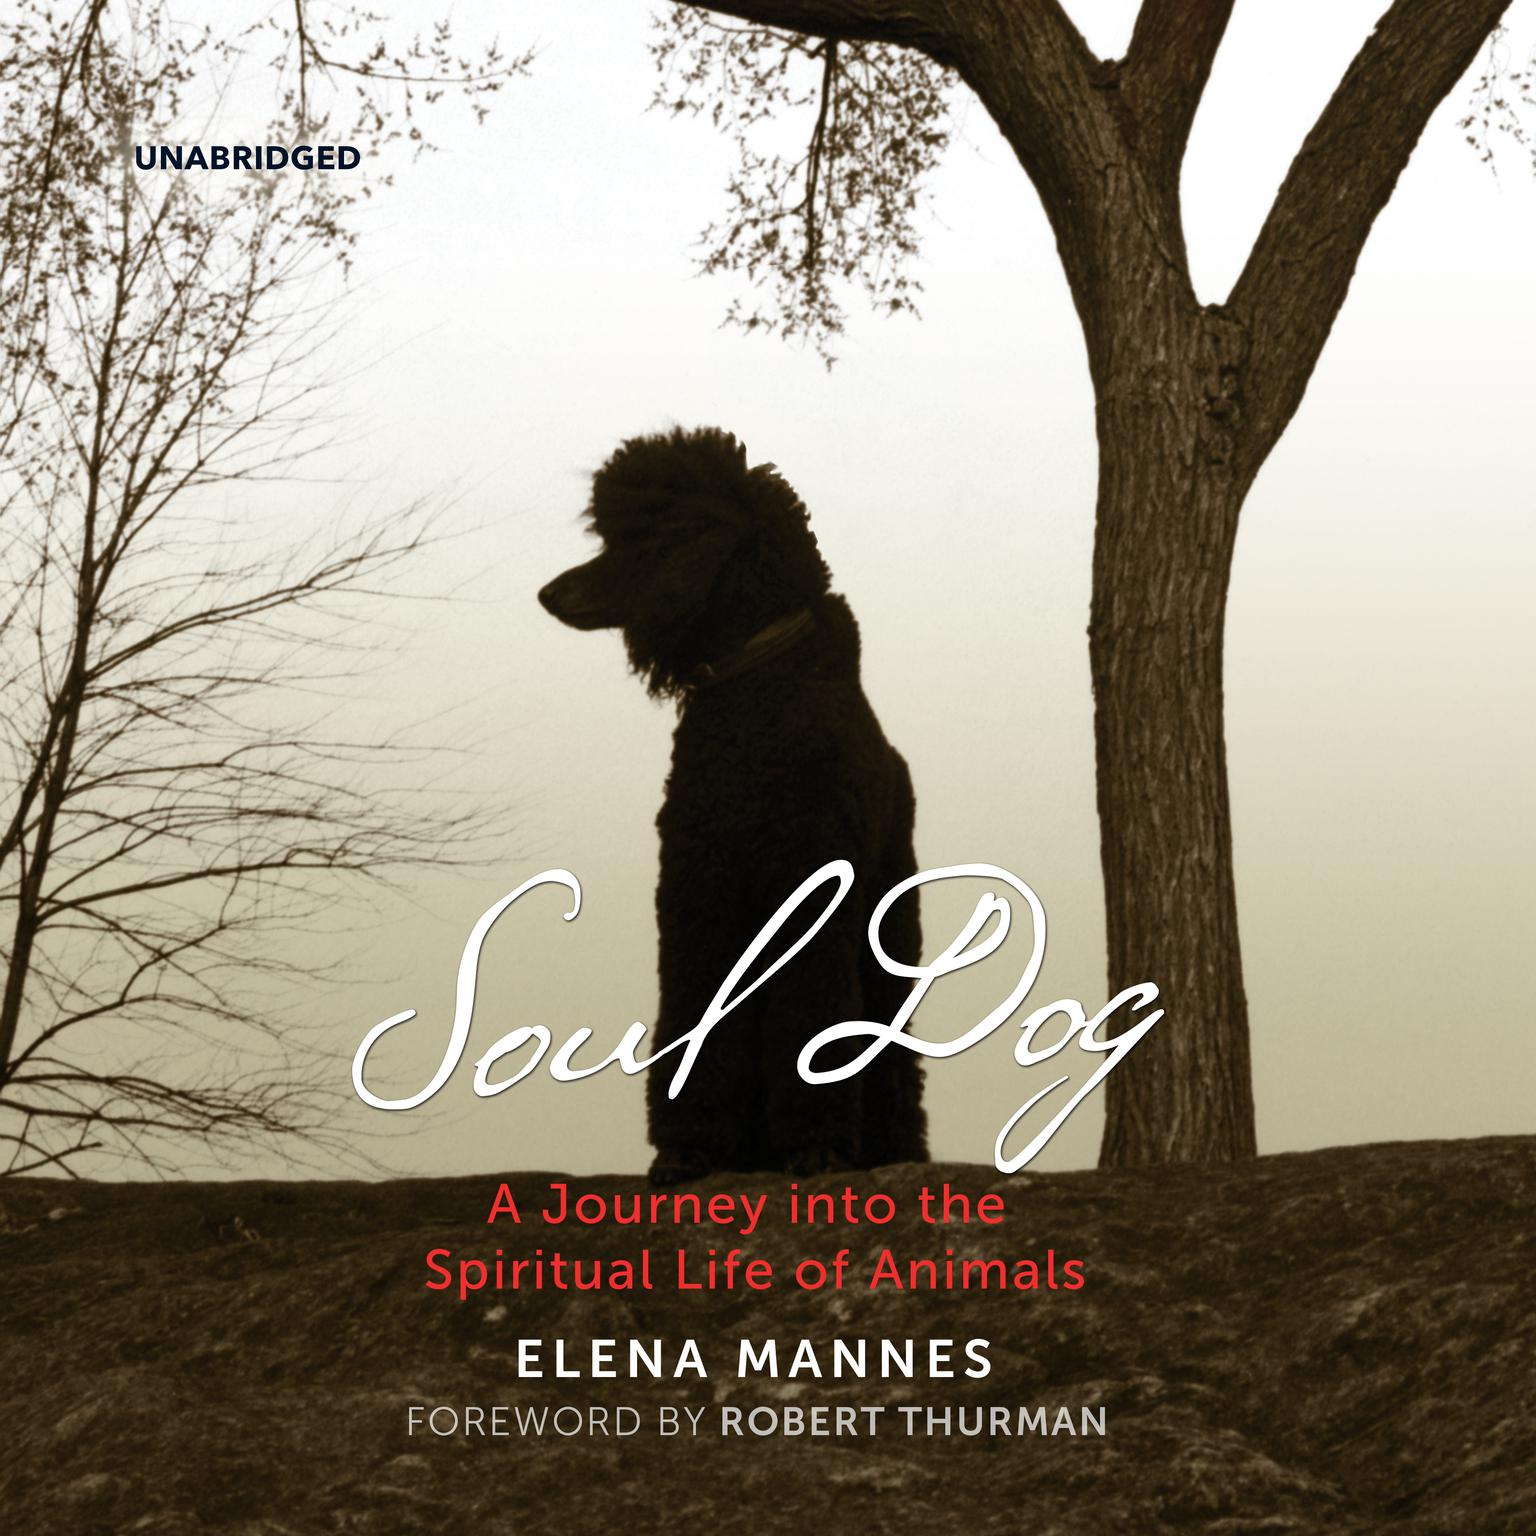 Printable Soul Dog:  A Journey into the Spiritual Life of Animals Audiobook Cover Art